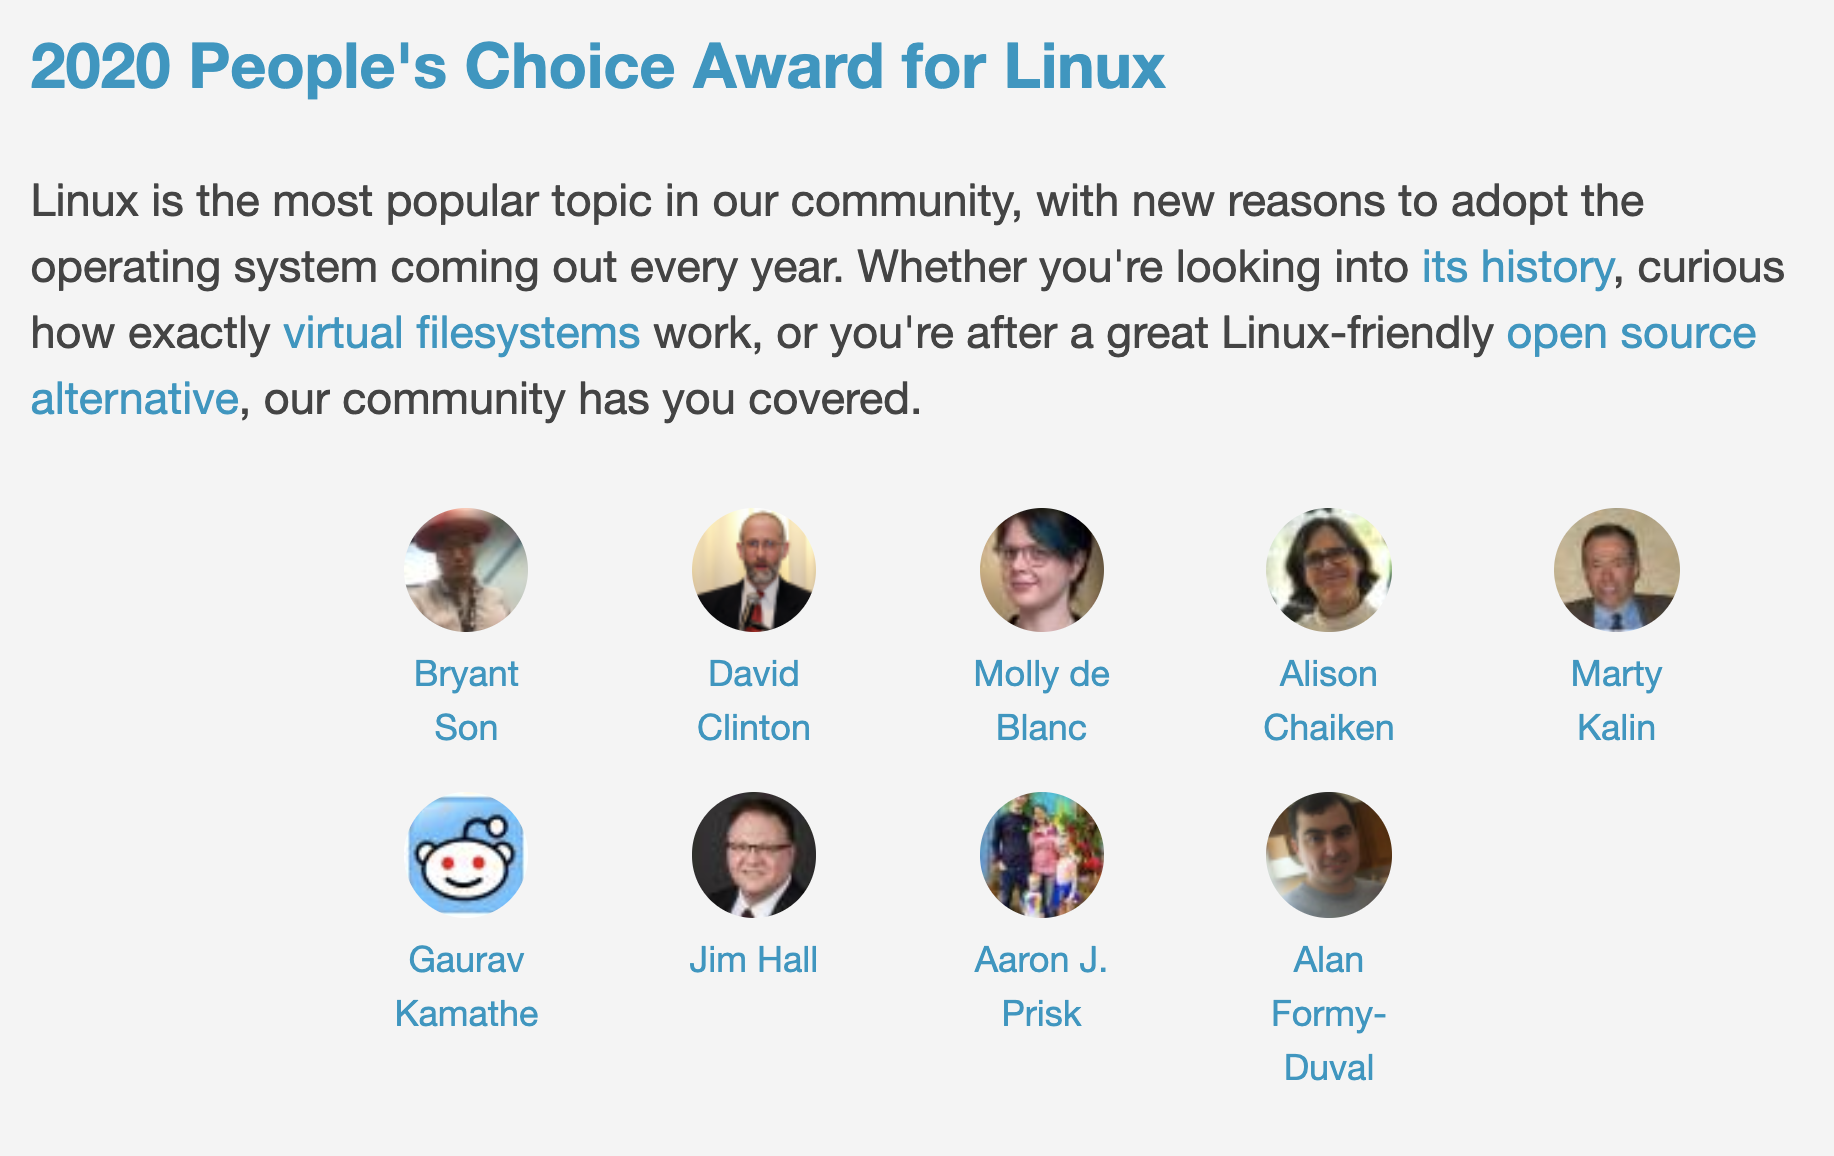 2020 People's Choice Award Winners in the Linux category